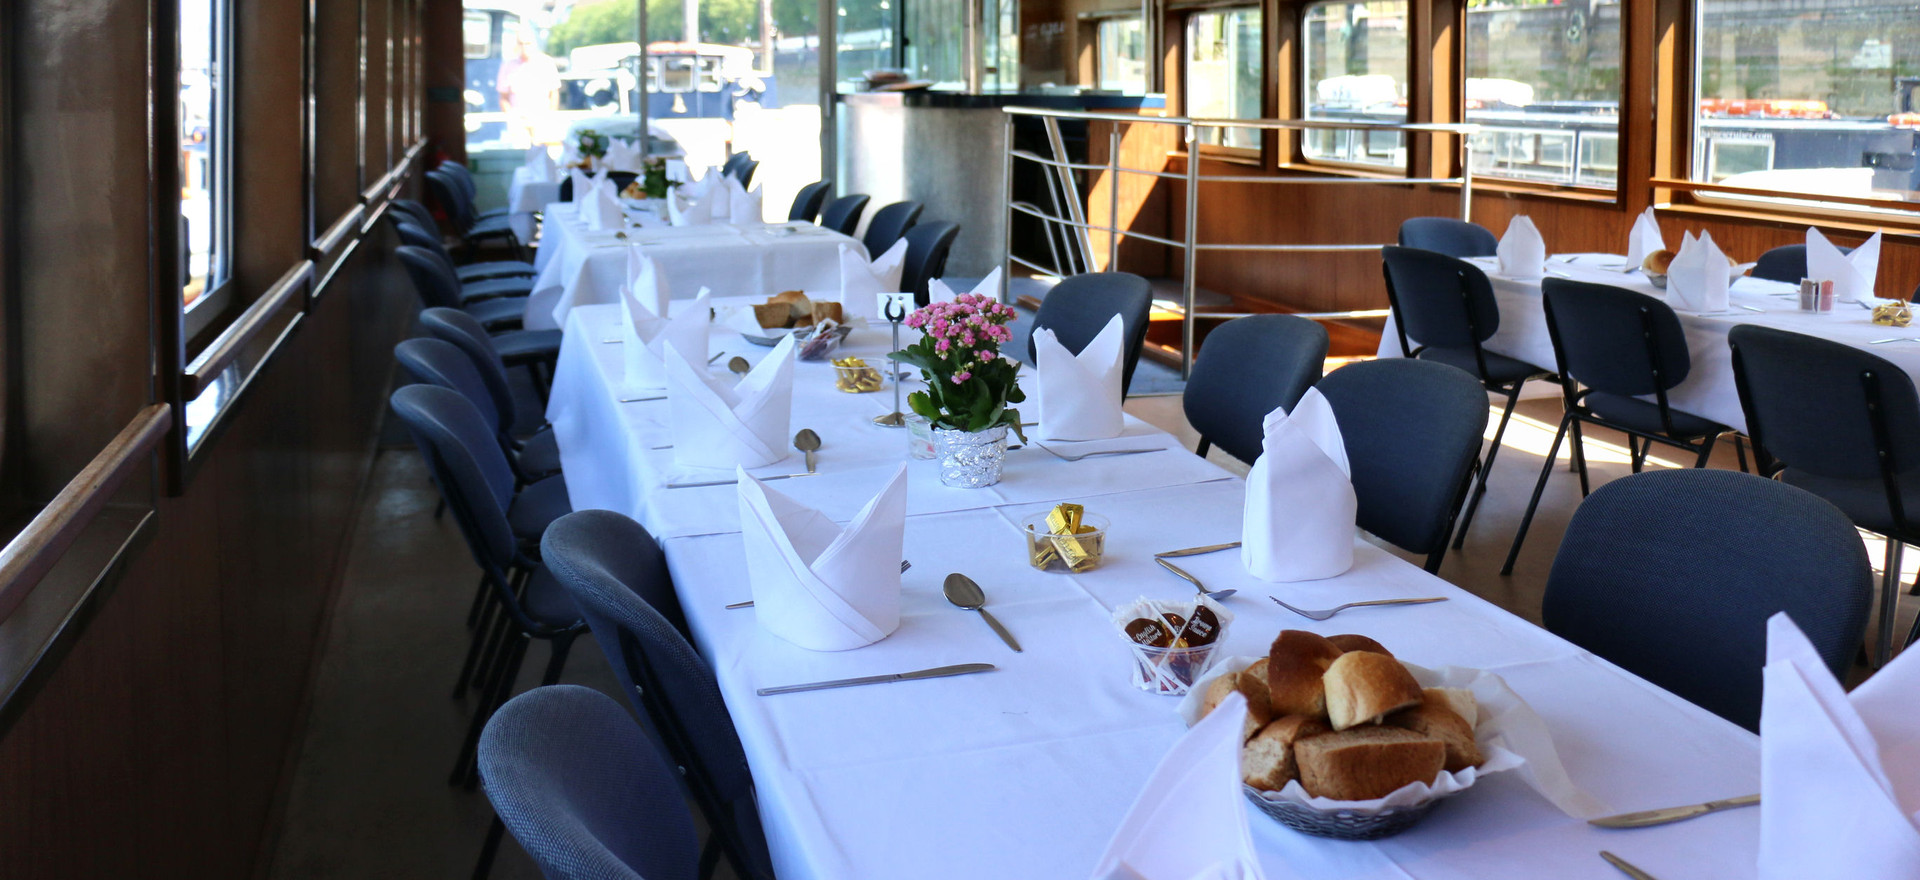 Formal dining on a Thames River party boat